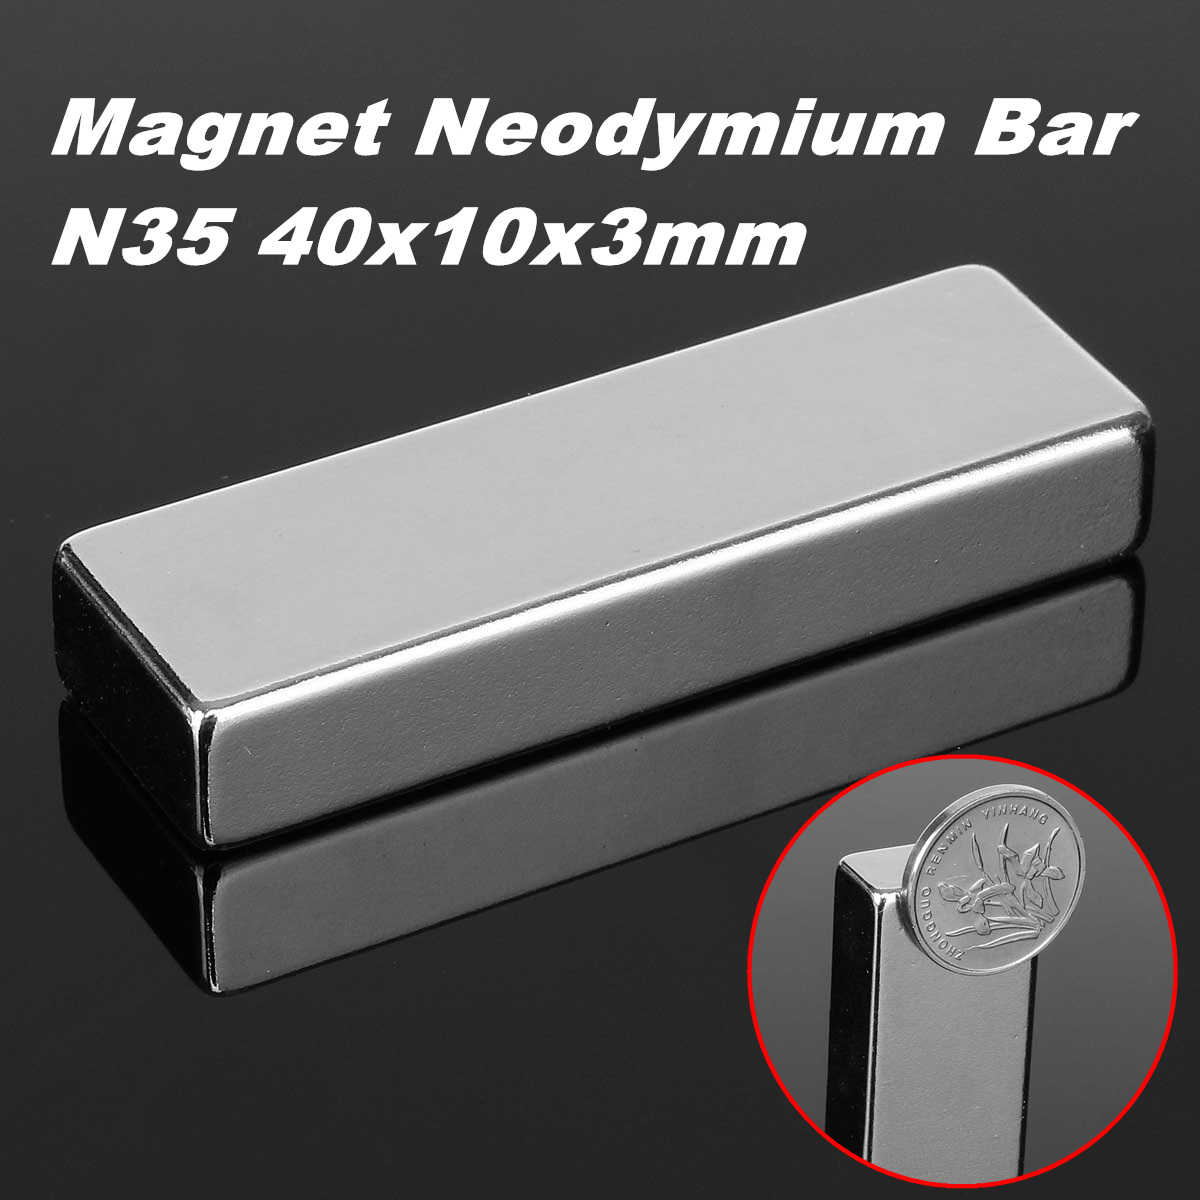 60x20x10mm N52 Block Strong Fridge Magnet Neodymium Permanent Rare Earth Magnet